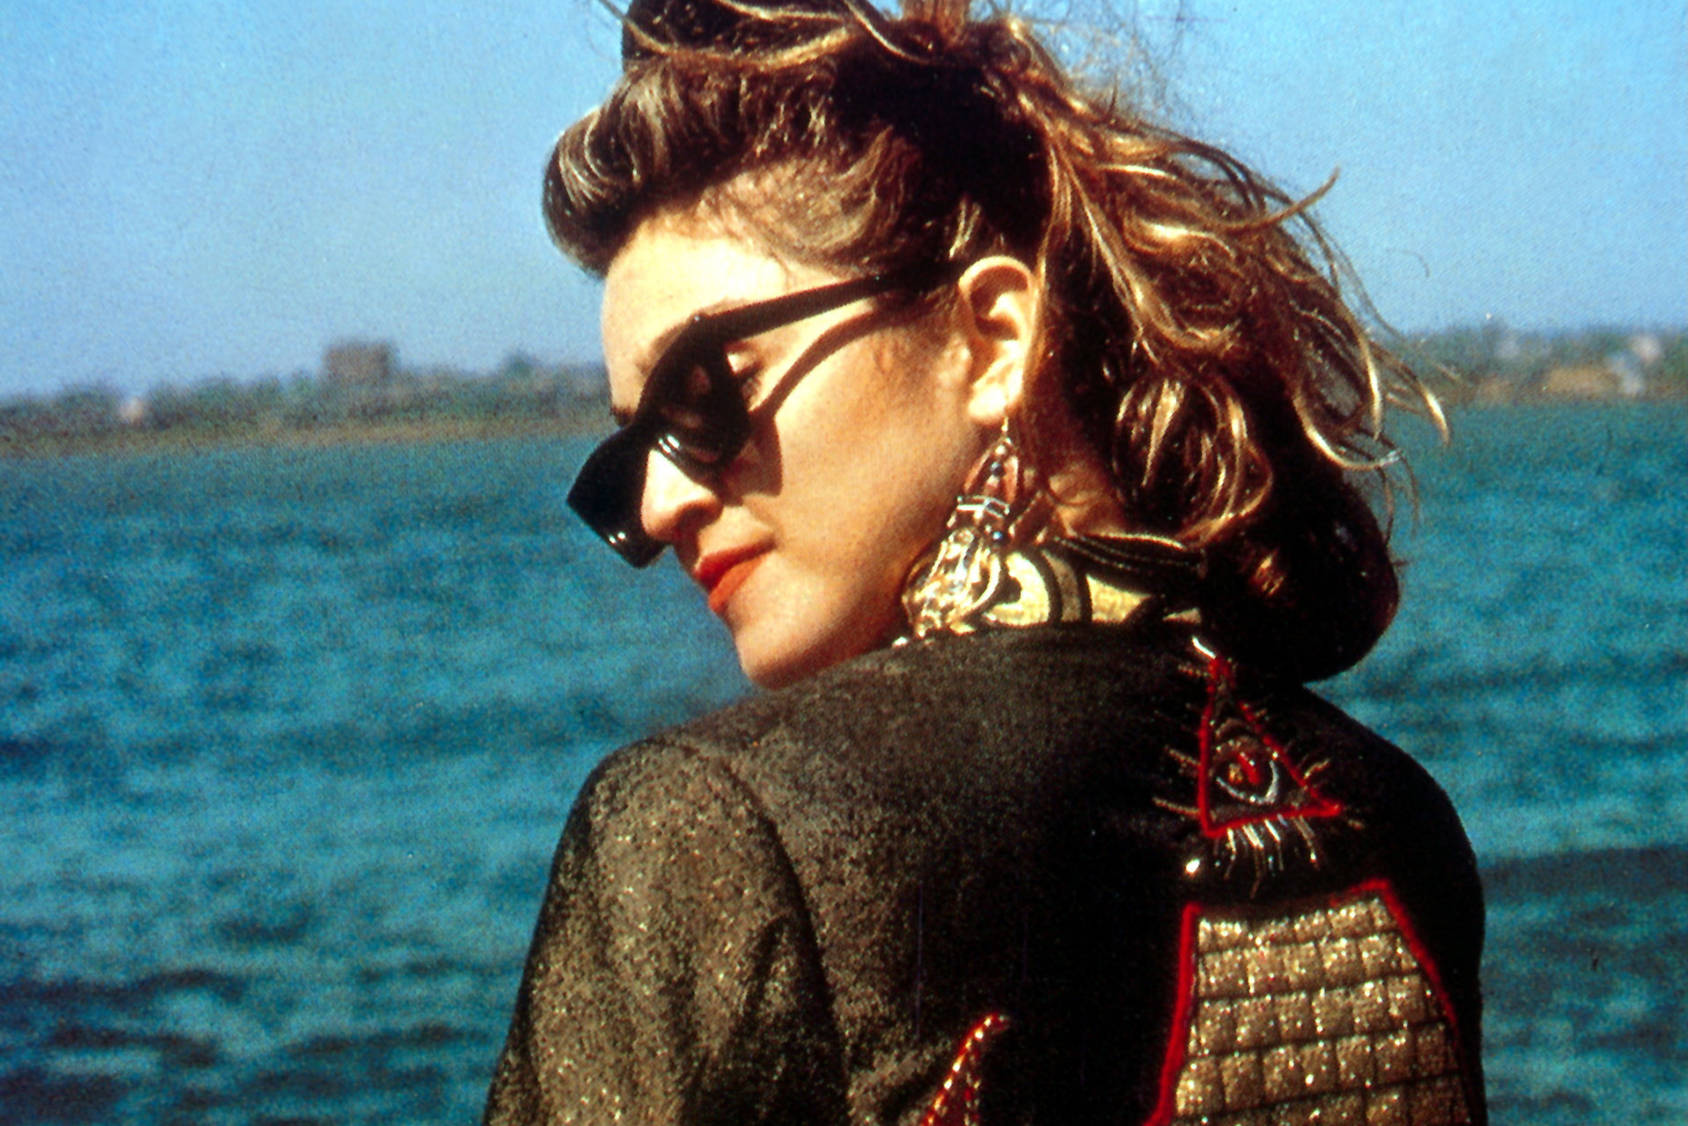 80s icon Madonna, Getty Images.